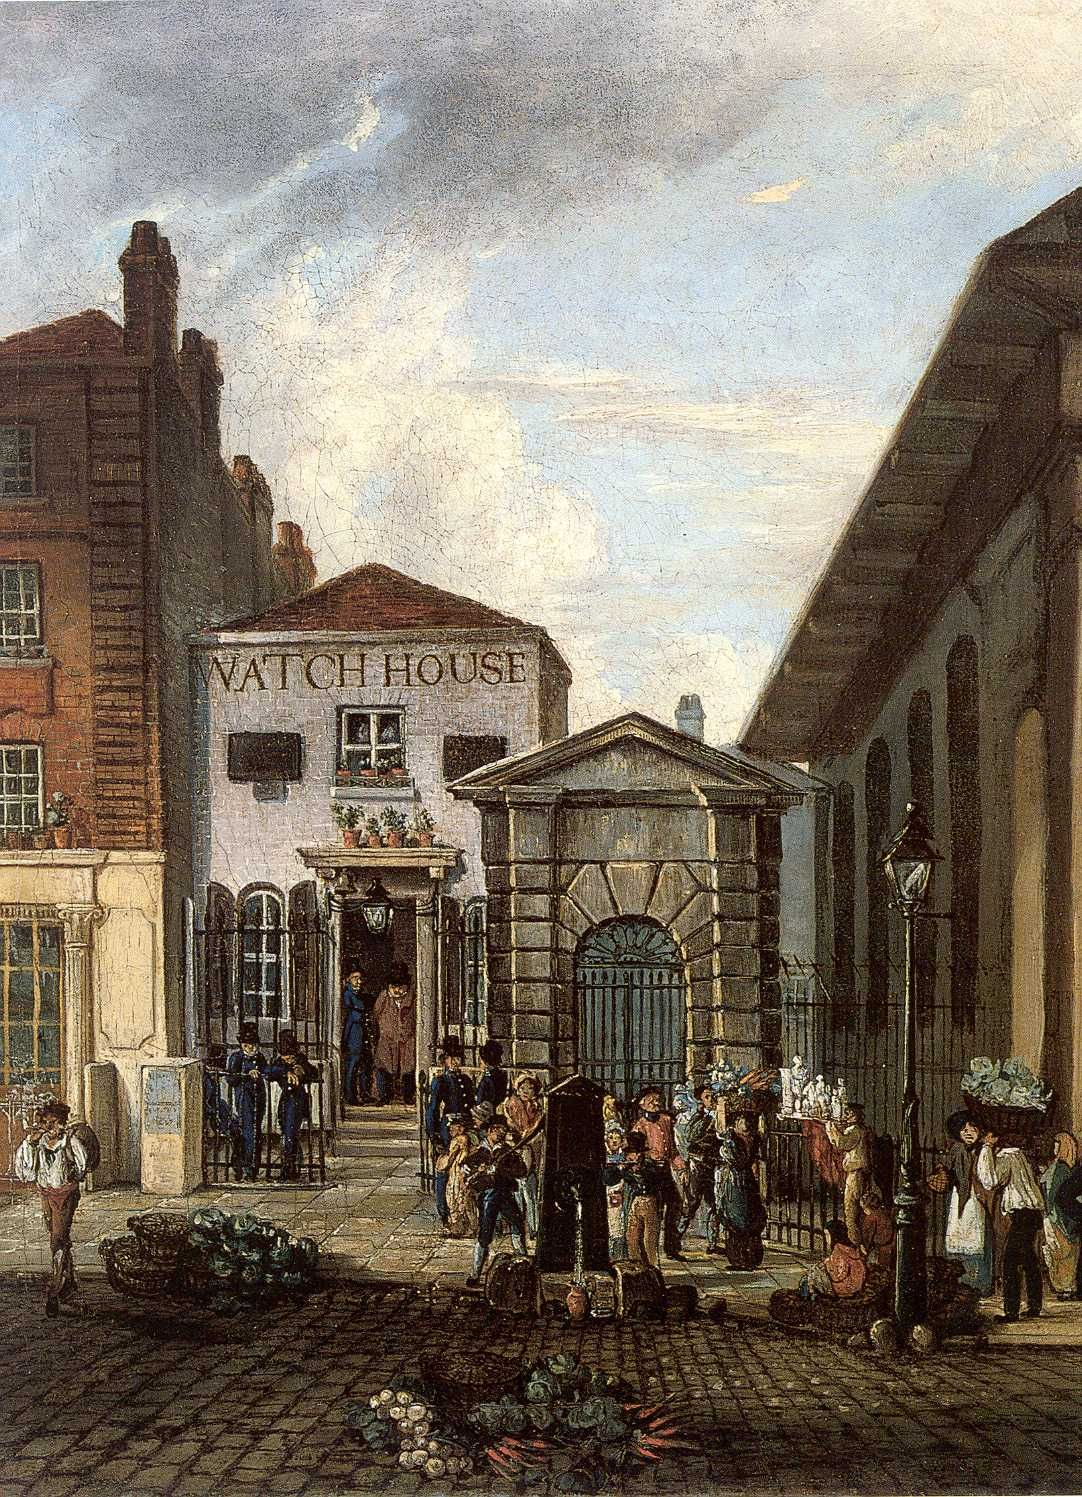 Covent Garden watch house, located next to the church of St. Paul Covent Garden.  A two storey white building with 'Watch House' painted on its upper floor is shown with a lively street scene in the foreground